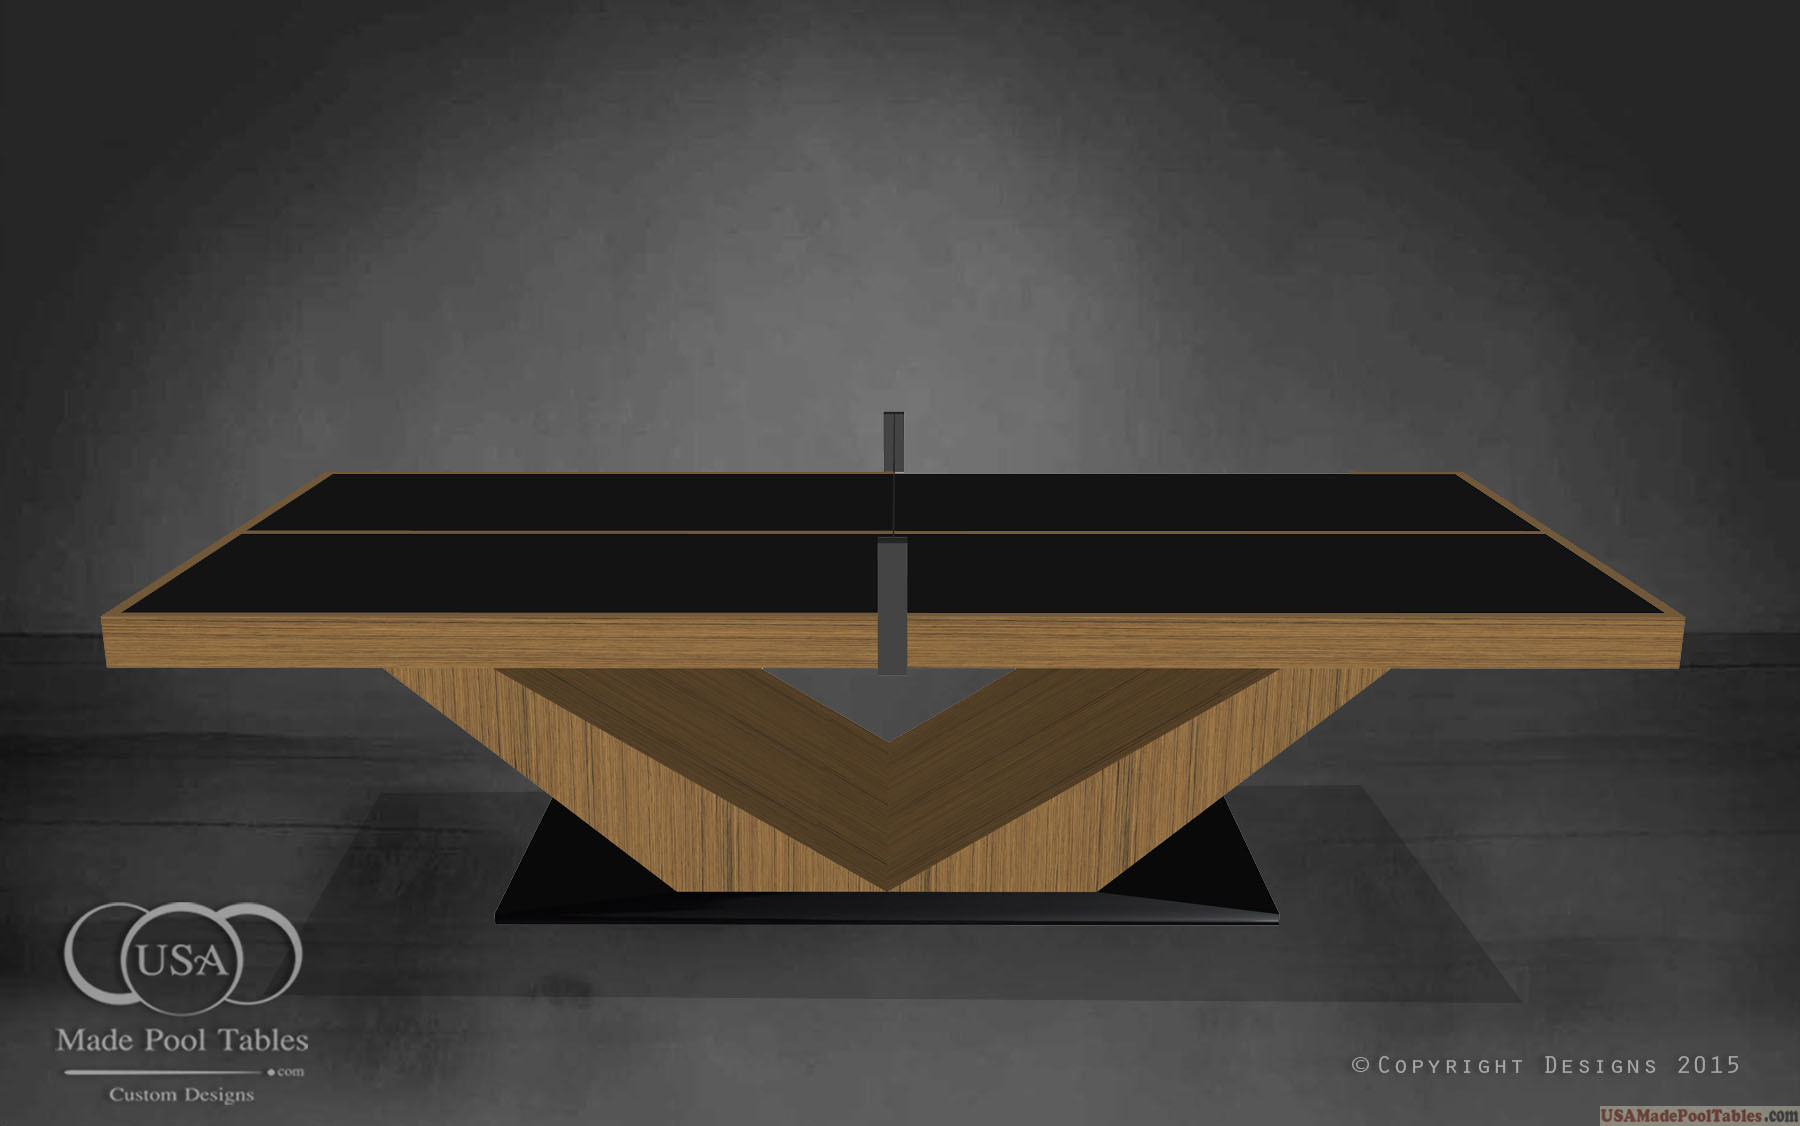 PING PONG TABLES : TABLE TENNIS